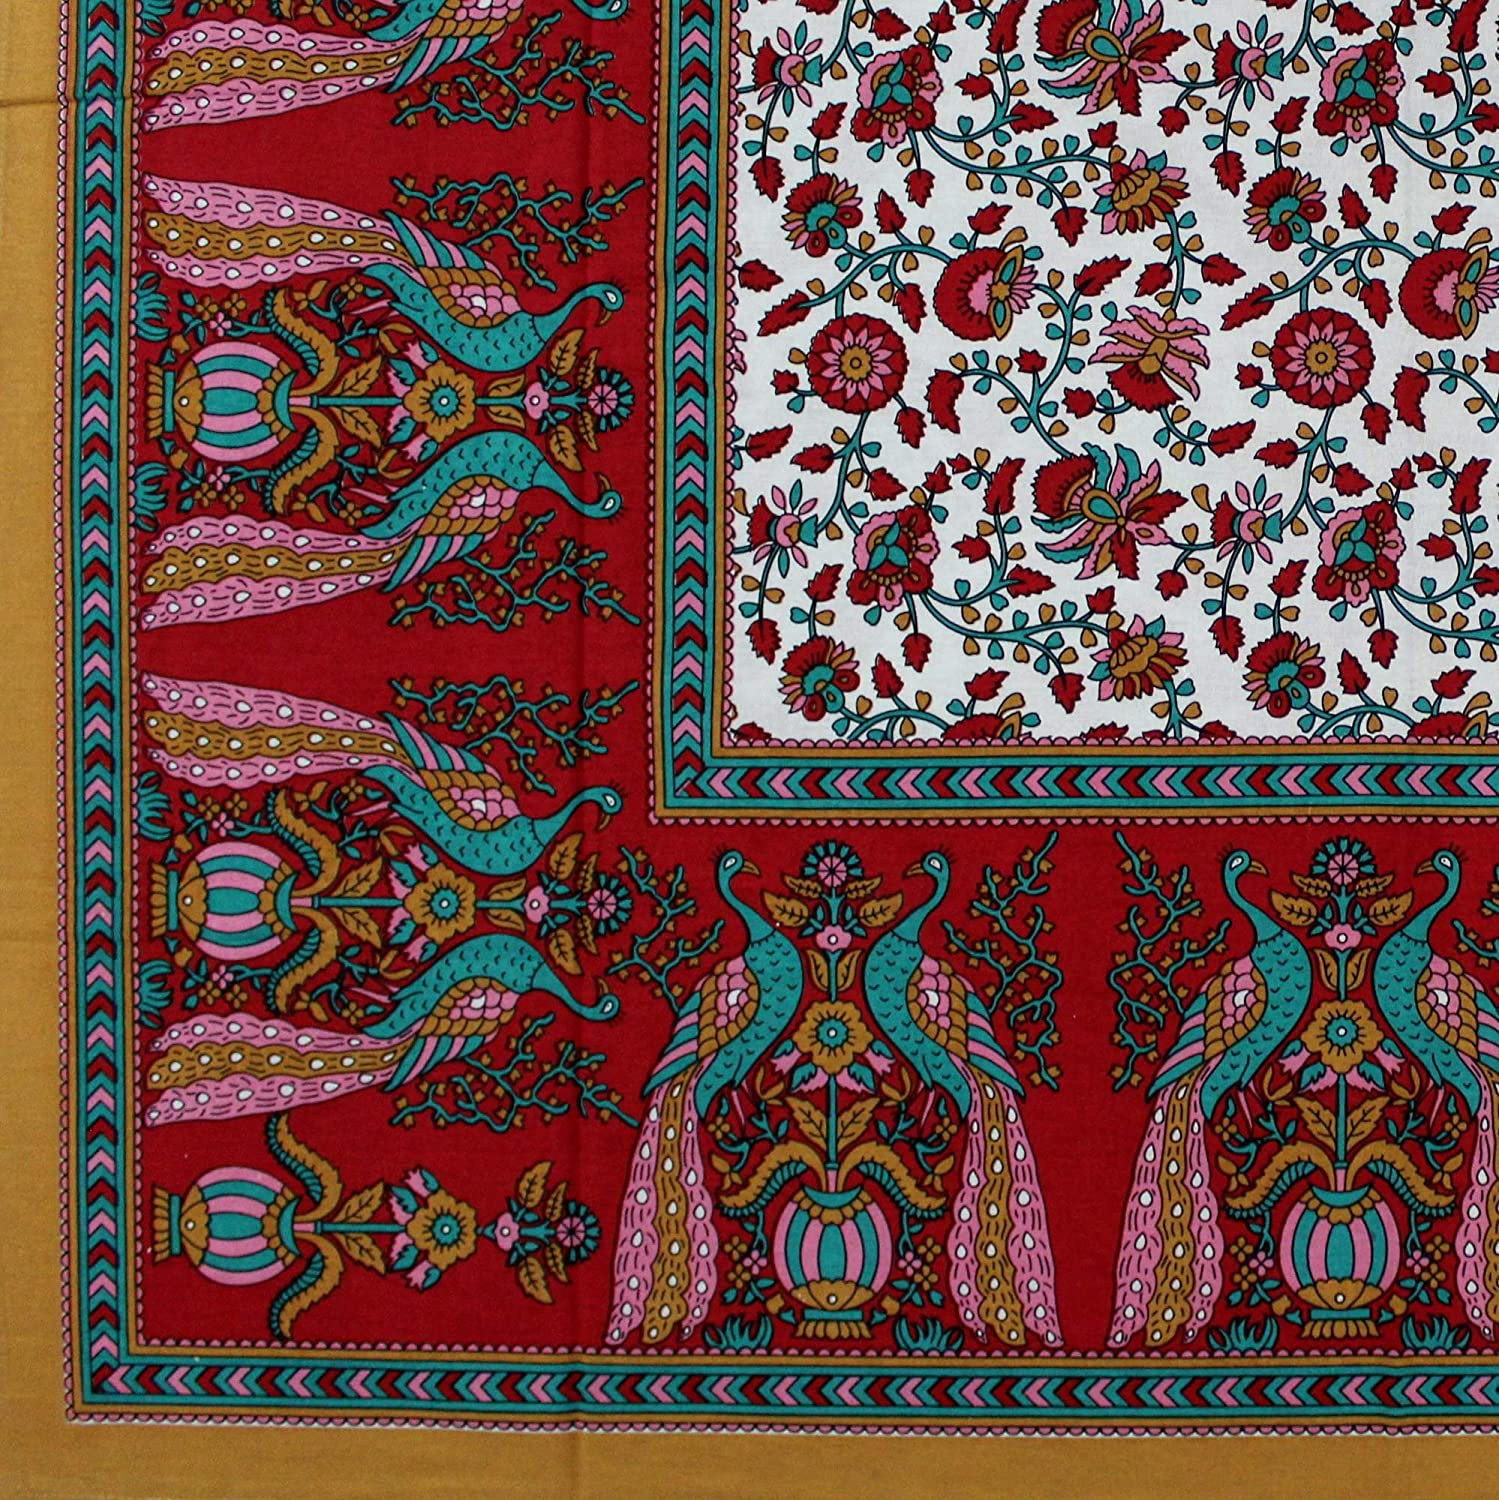 India Arts Cotton Peacock Floral Tapestry Wall Hanging Coverlet Bedspread Tablecloth Square Beach Sheet Thin Bed Sheet Red Queen 106 x 106 inches